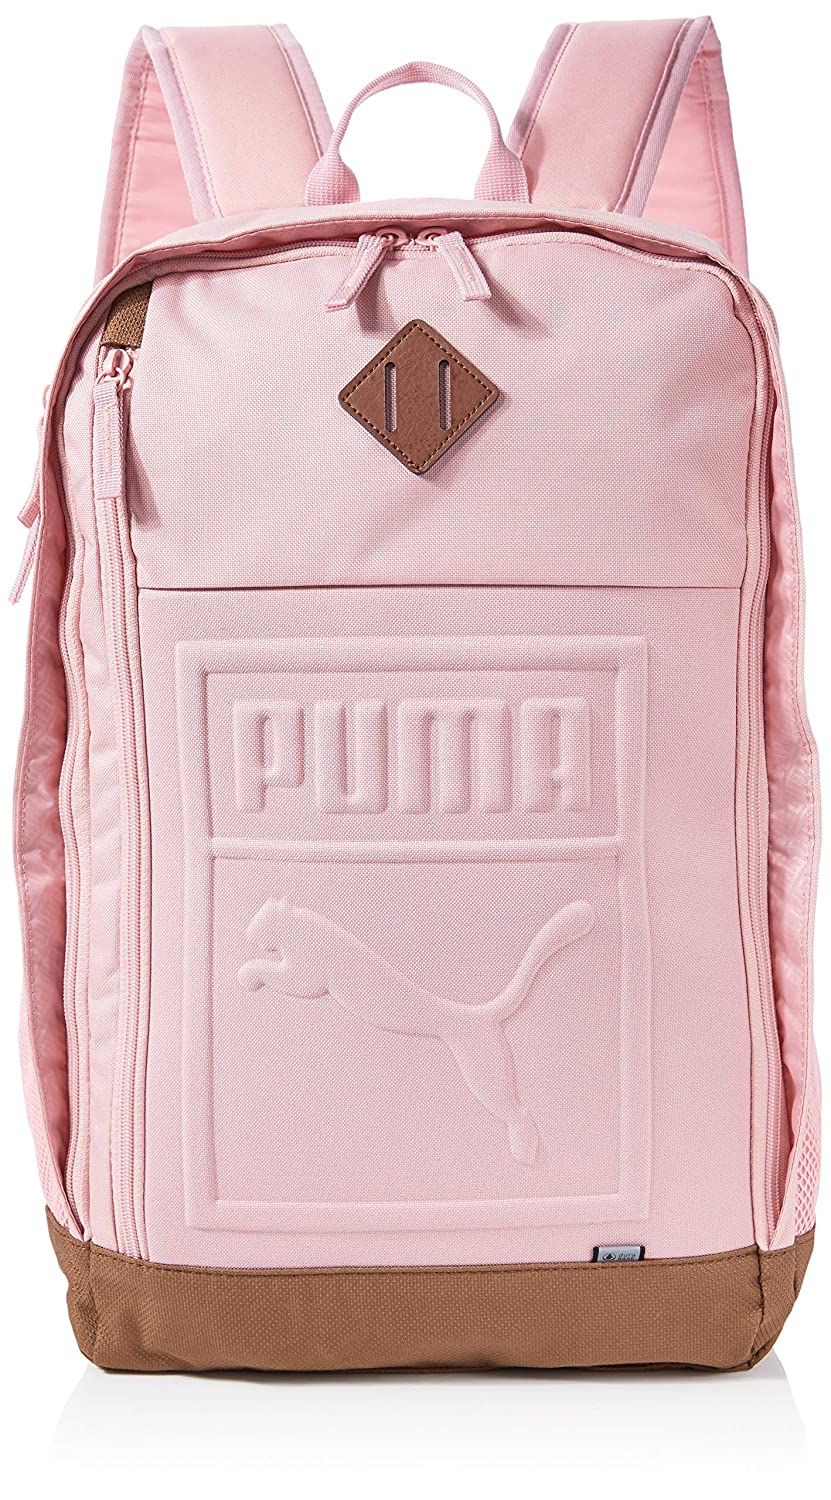 PUMA Bridal Rose School Backpack